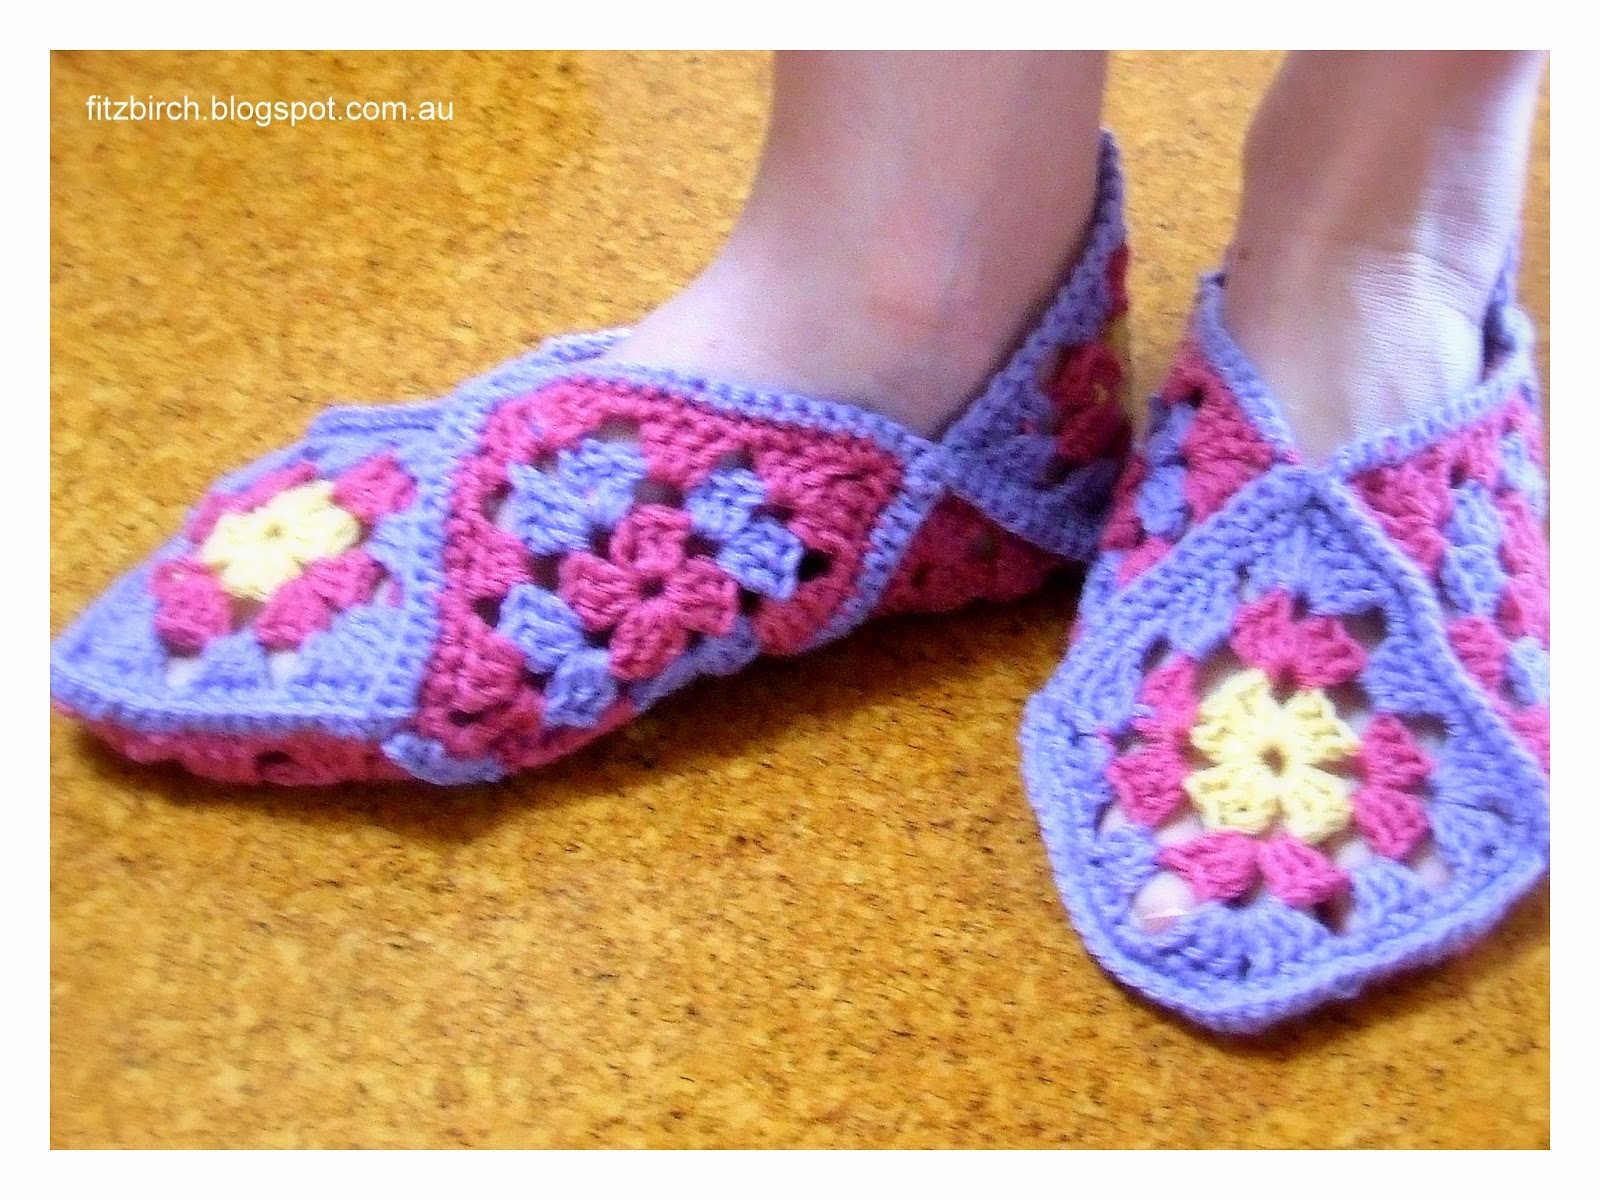 Crochet Pattern For Granny Square Slippers : FitzBirch Crafts: Granny Square Slippers